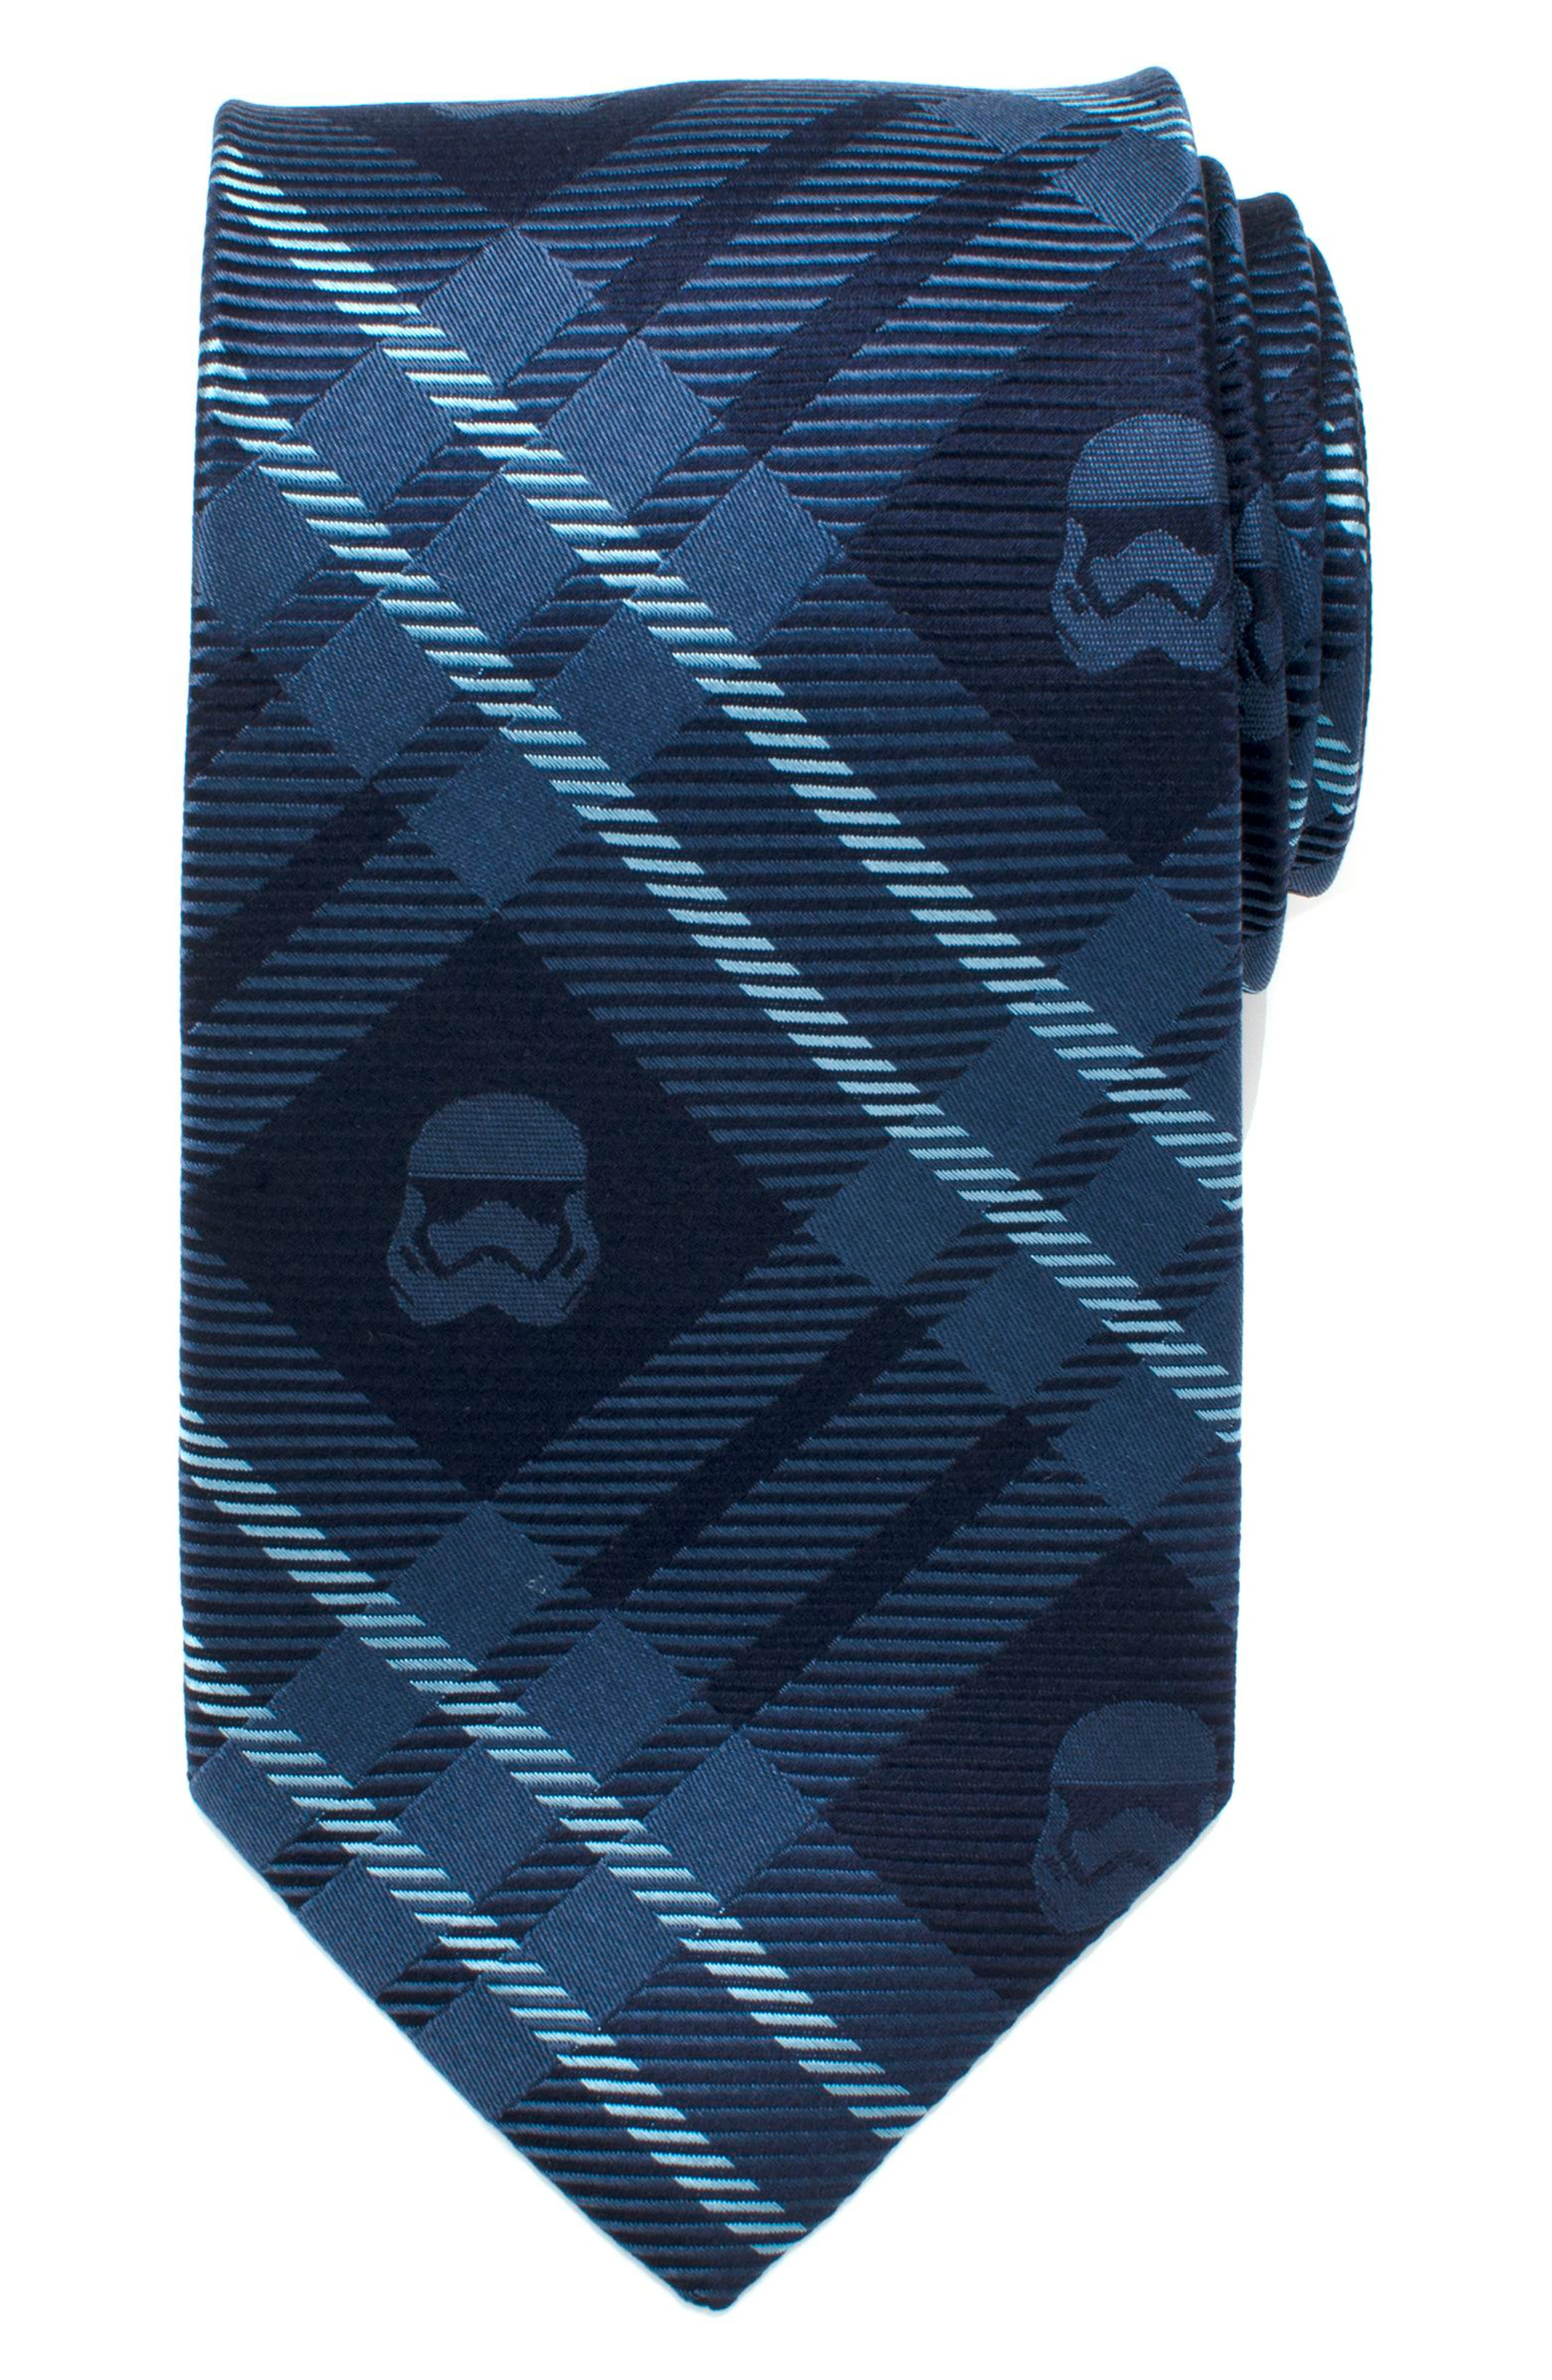 Stormtrooper masks glare menacingly-or protectively, depending on your allegiances-from the diamond plaid of a handsome silk tie. Style Name: Cufflinks, Inc. Stormtrooper Plaid Silk Tie. Style Number: 5615450. Available in stores.